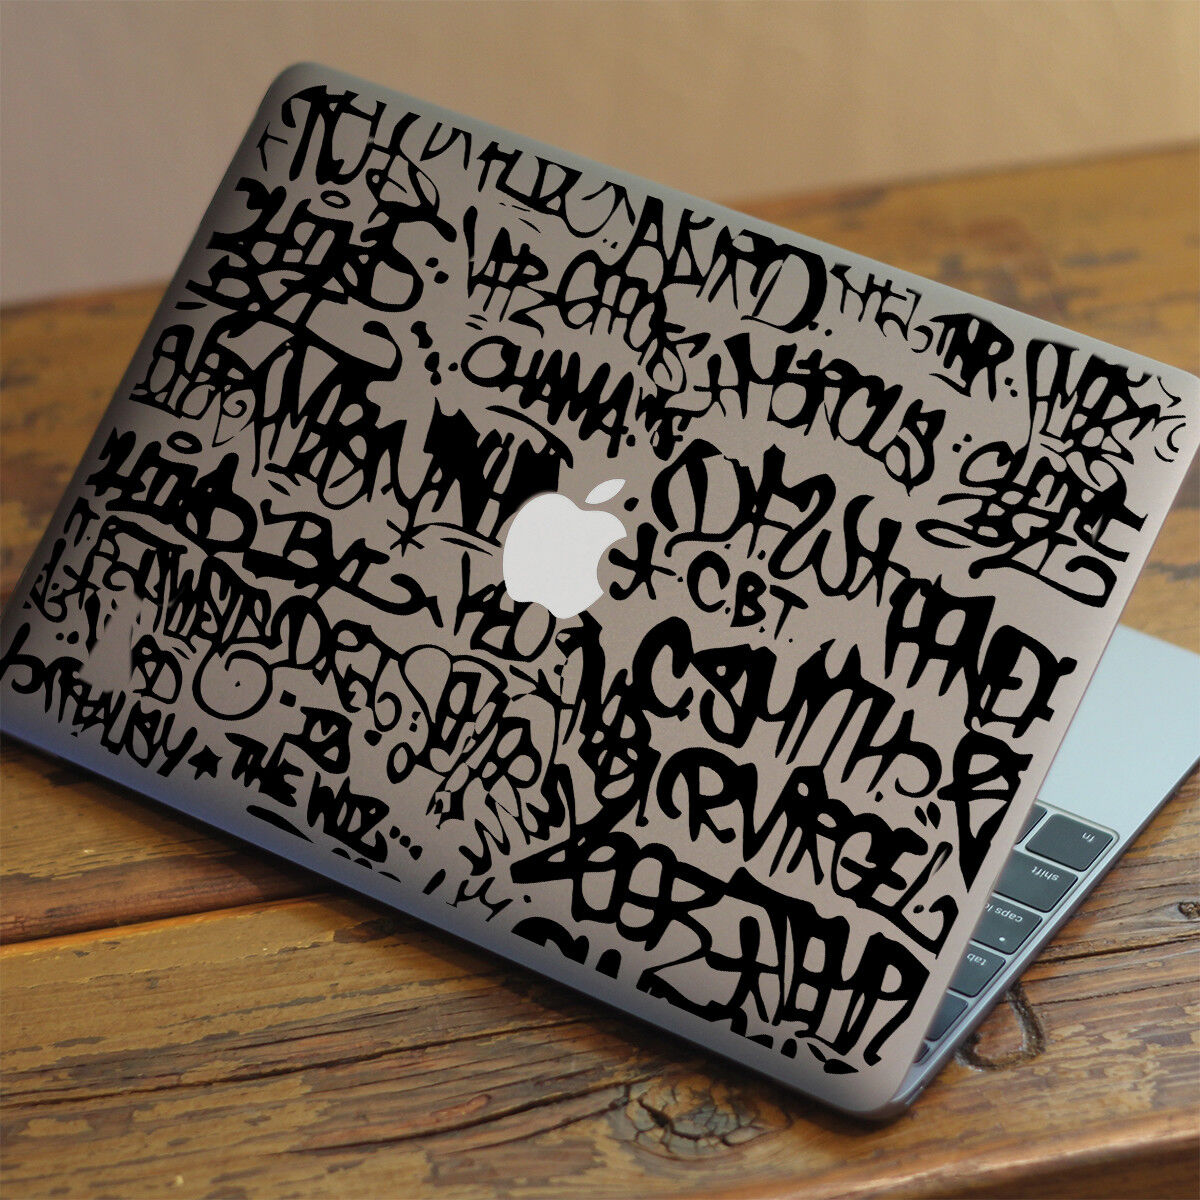 FULL GRAFFITI Apple MacBook Decal Sticker fits 11